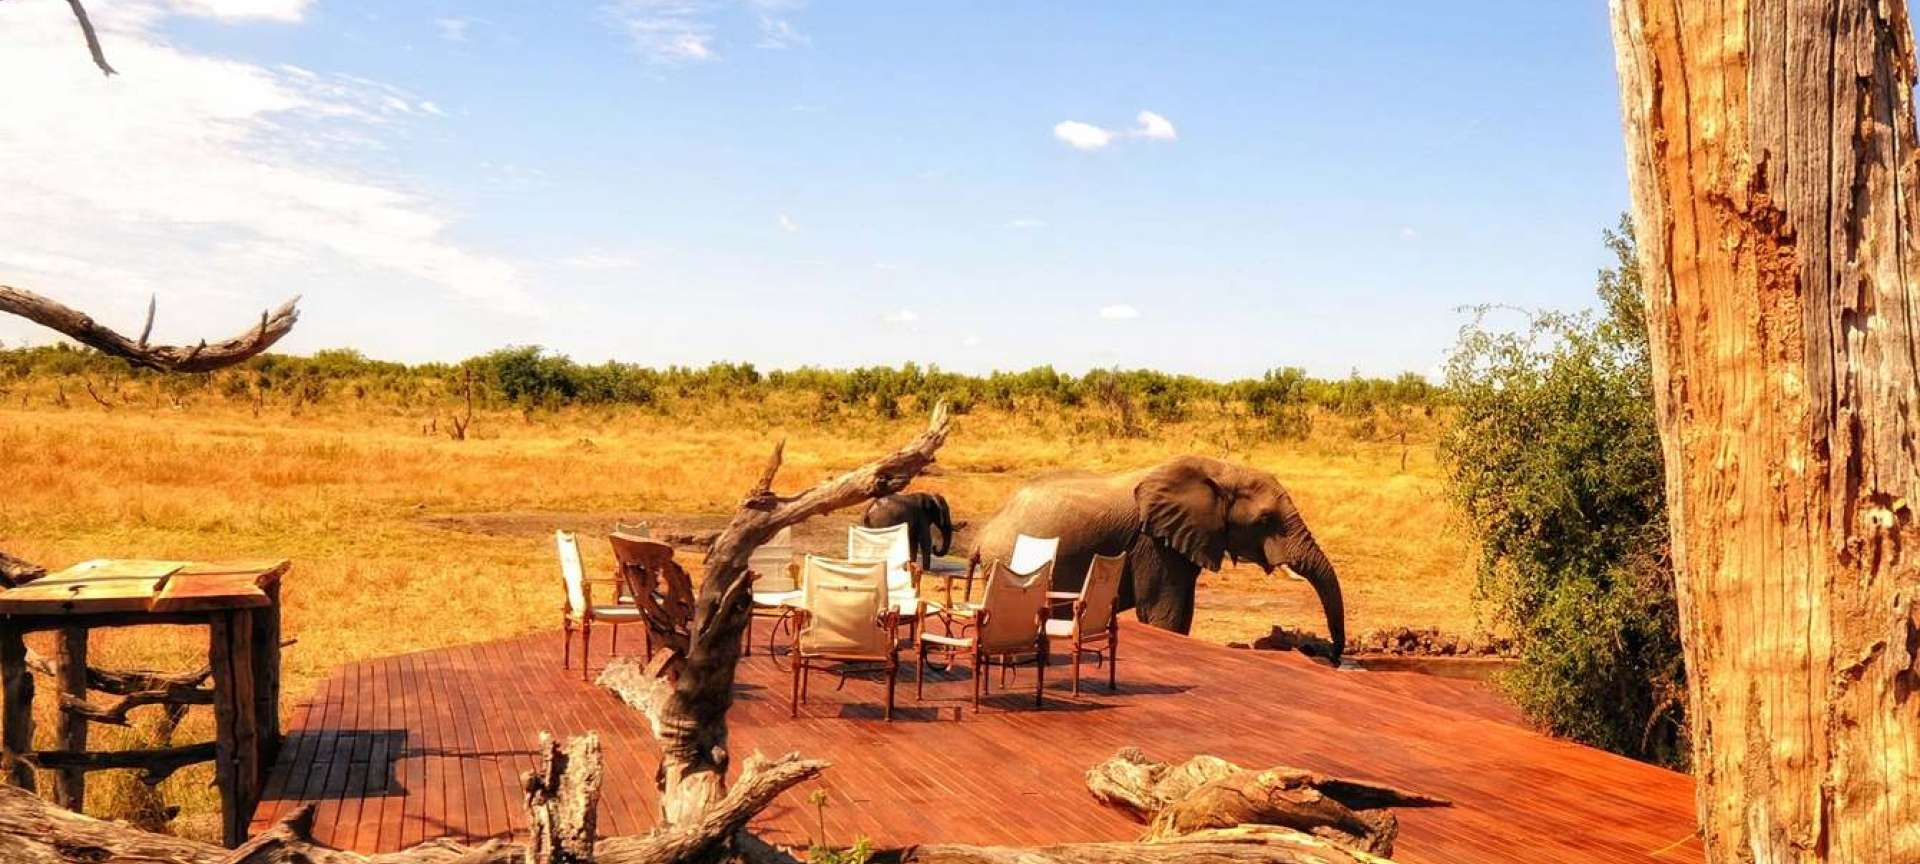 lodges in zimbabwe